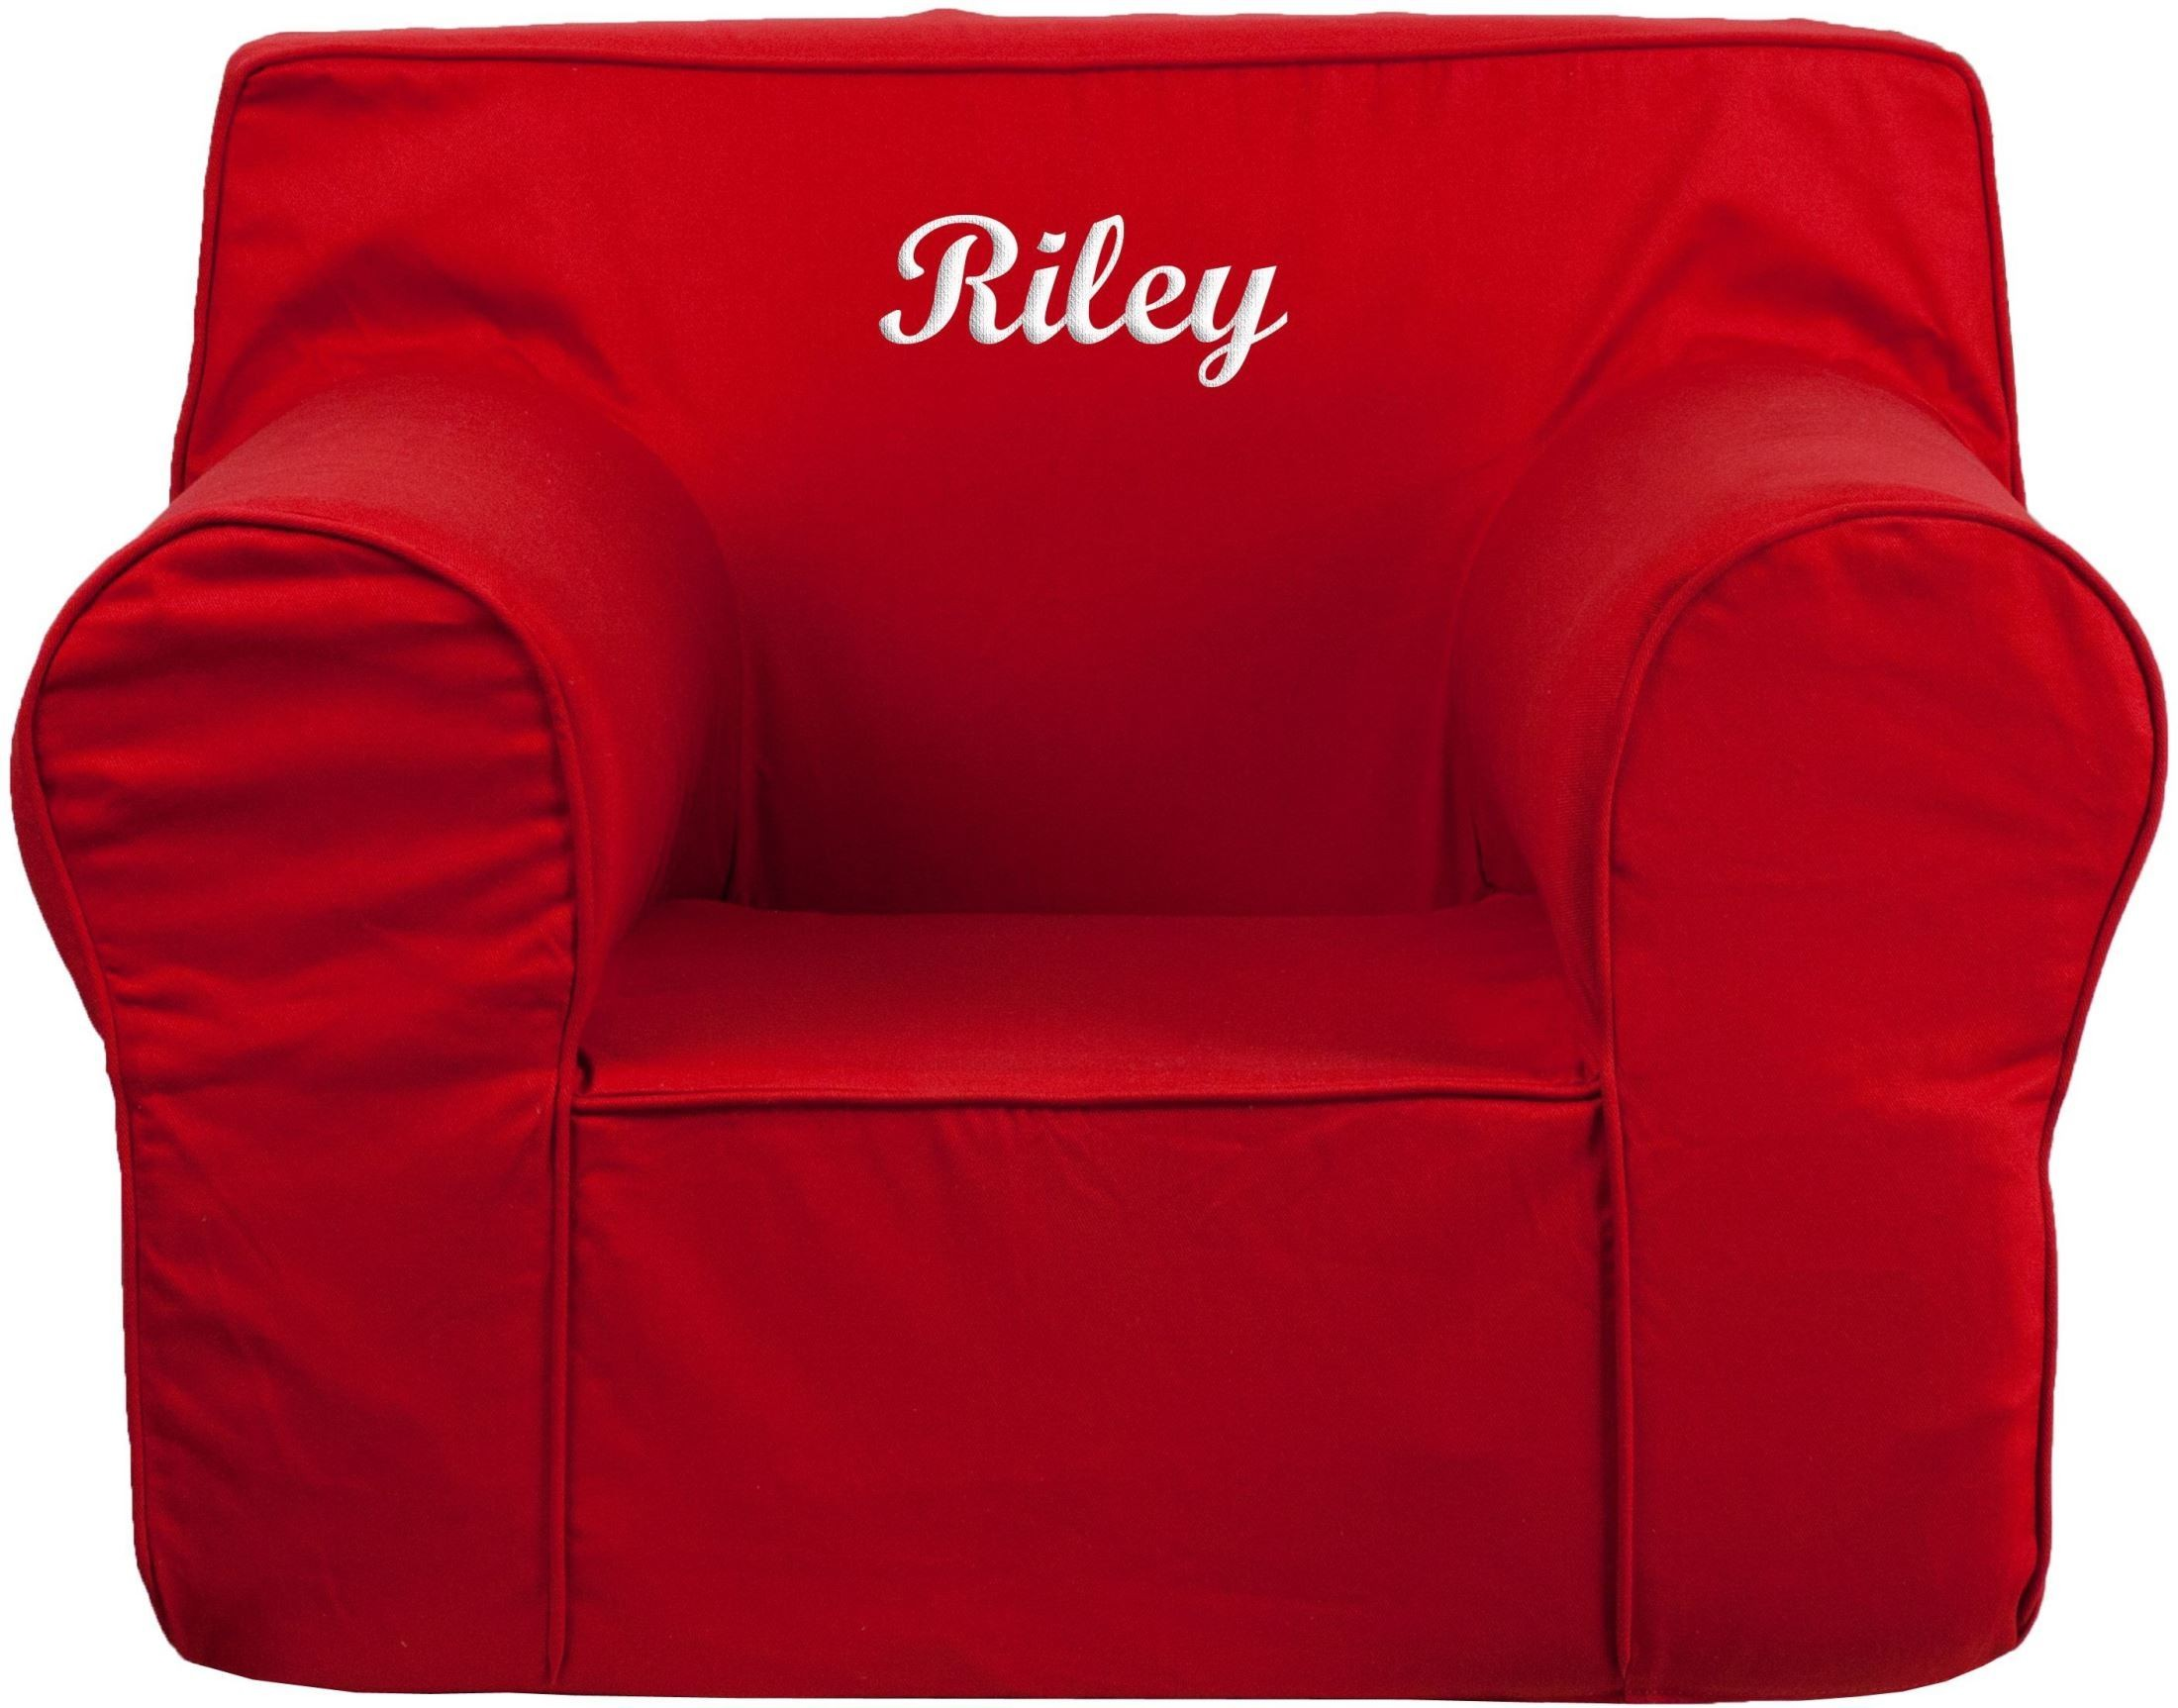 Personalized oversized solid red kids chair with for Oversized kids chair